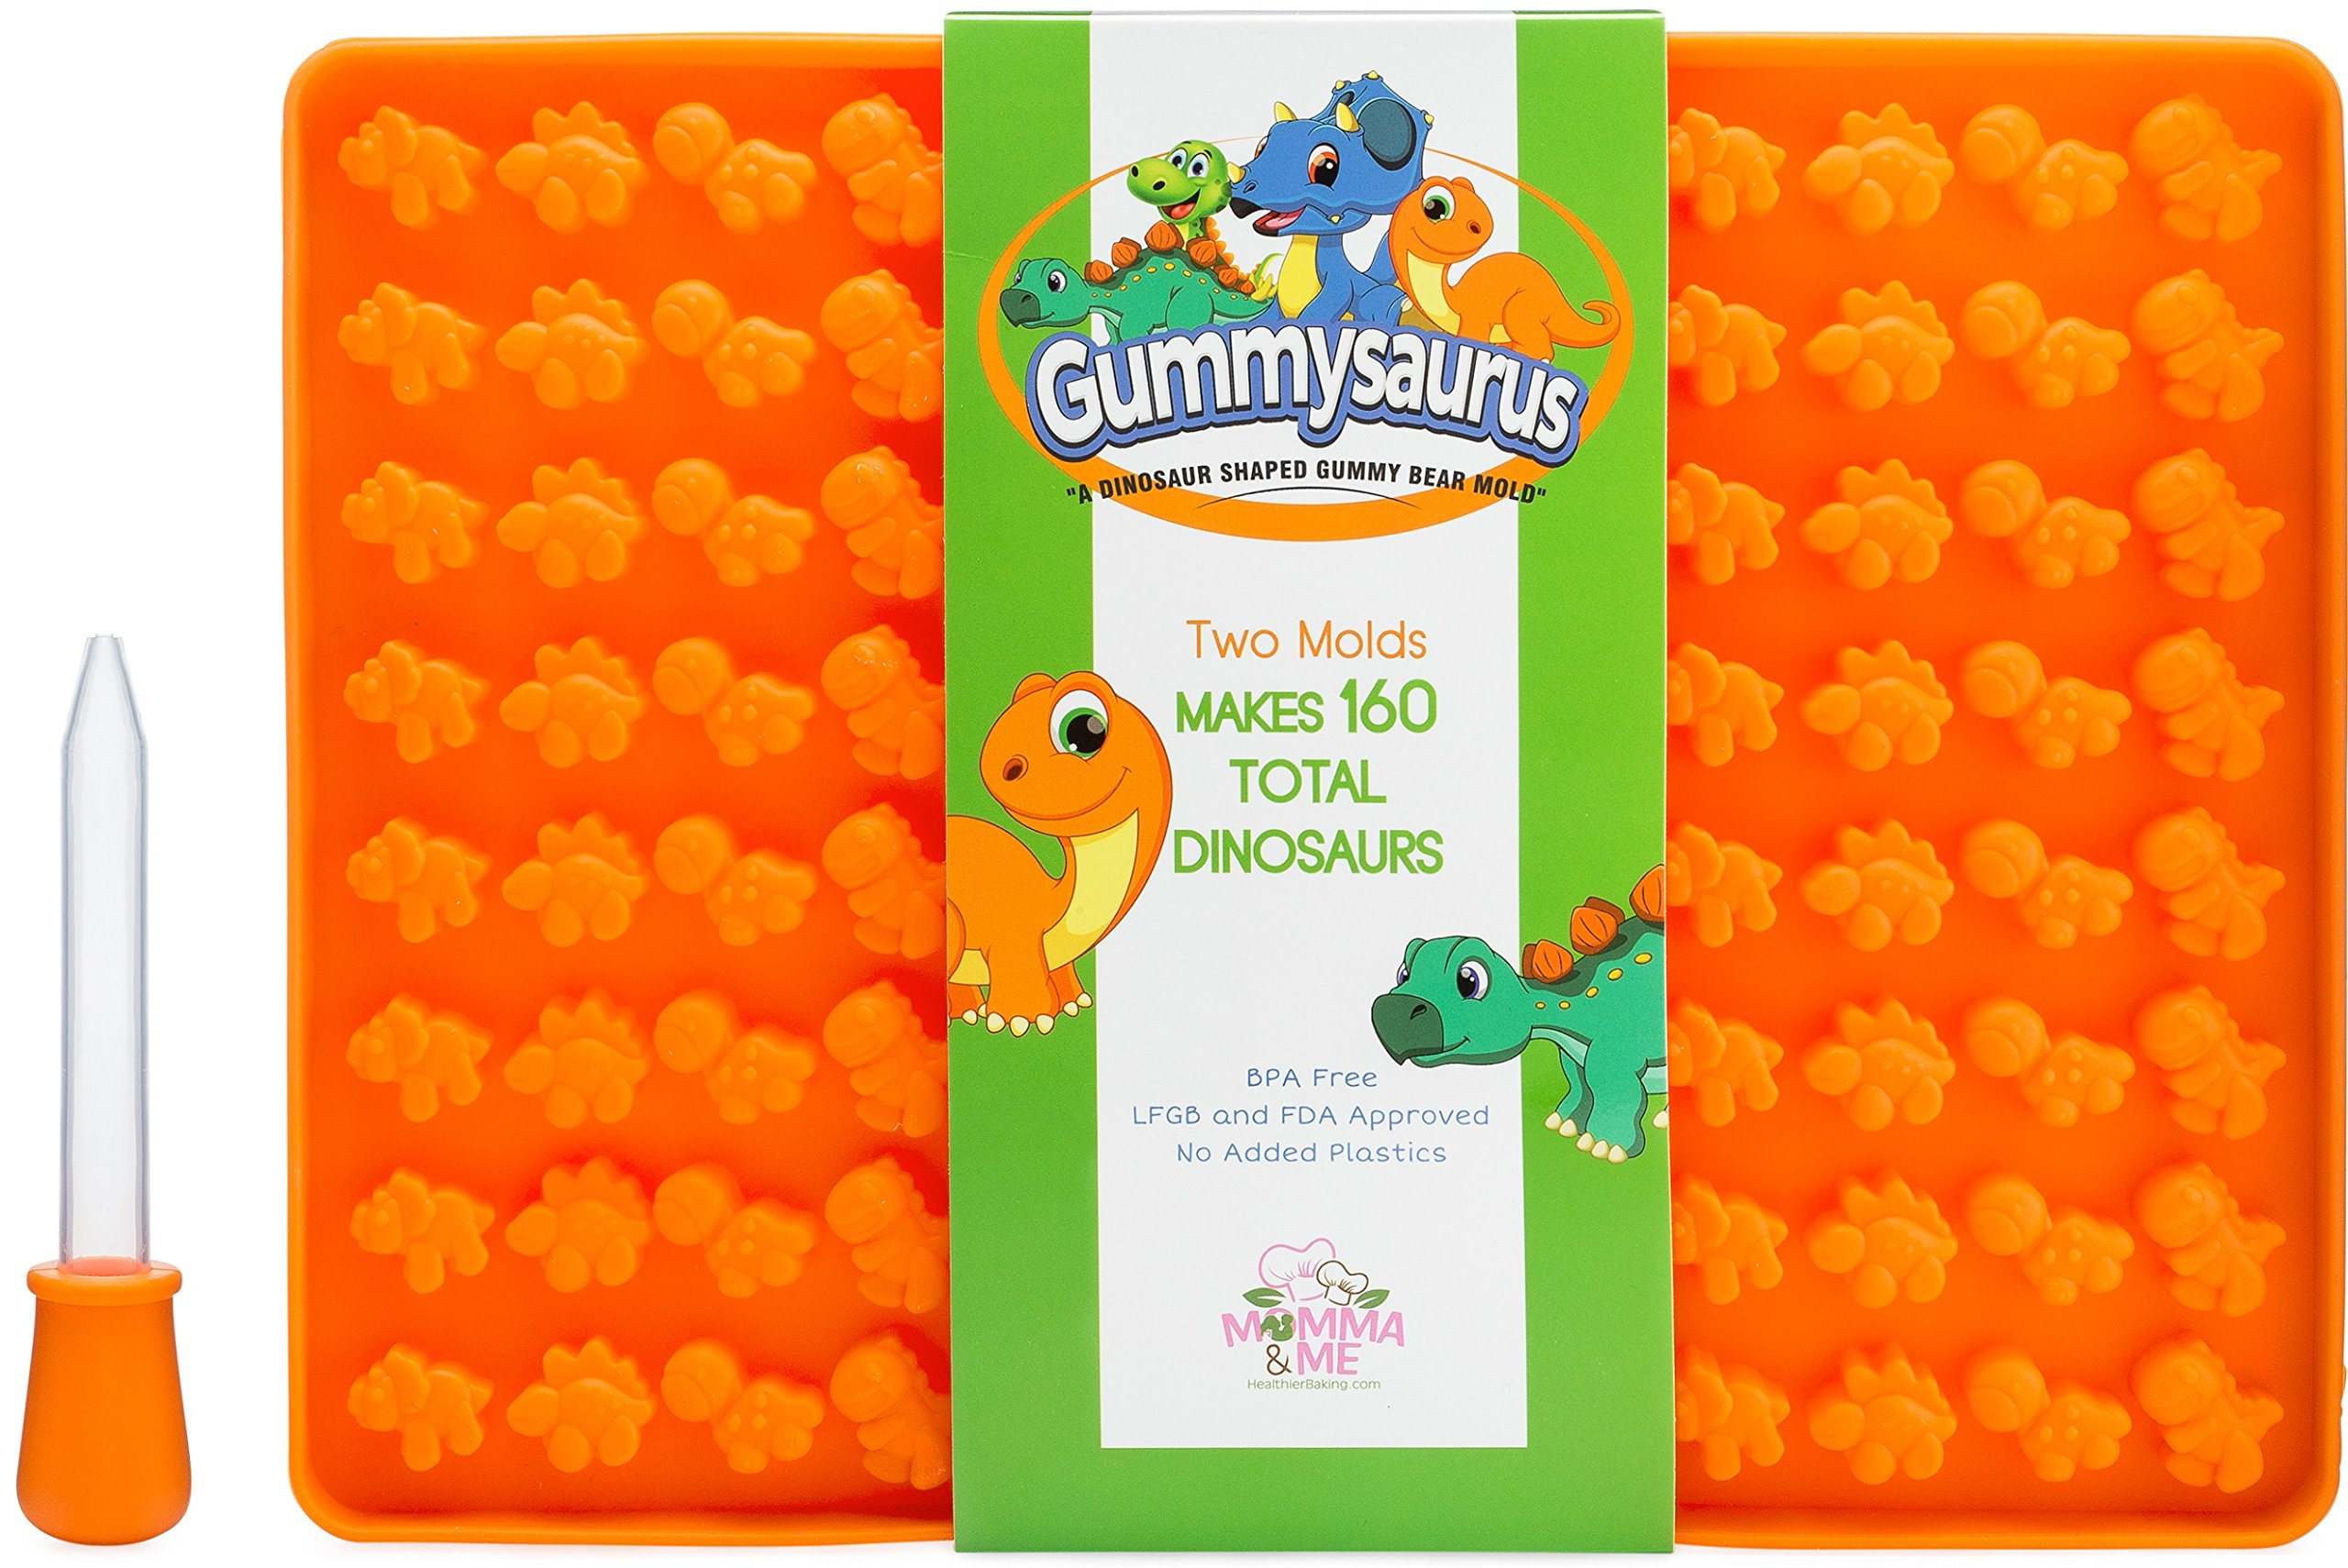 Gummysaurus Dinosaur-Shaped Gummies Mold Gummie Gummy Bear Mold (2-Pack) Giant, Non-Stick Silicone Tray | Creates 160 Sweet Snacks | Triceratops, T-Rex, Stegosaurus, Brontosaurus | Kid Friendly